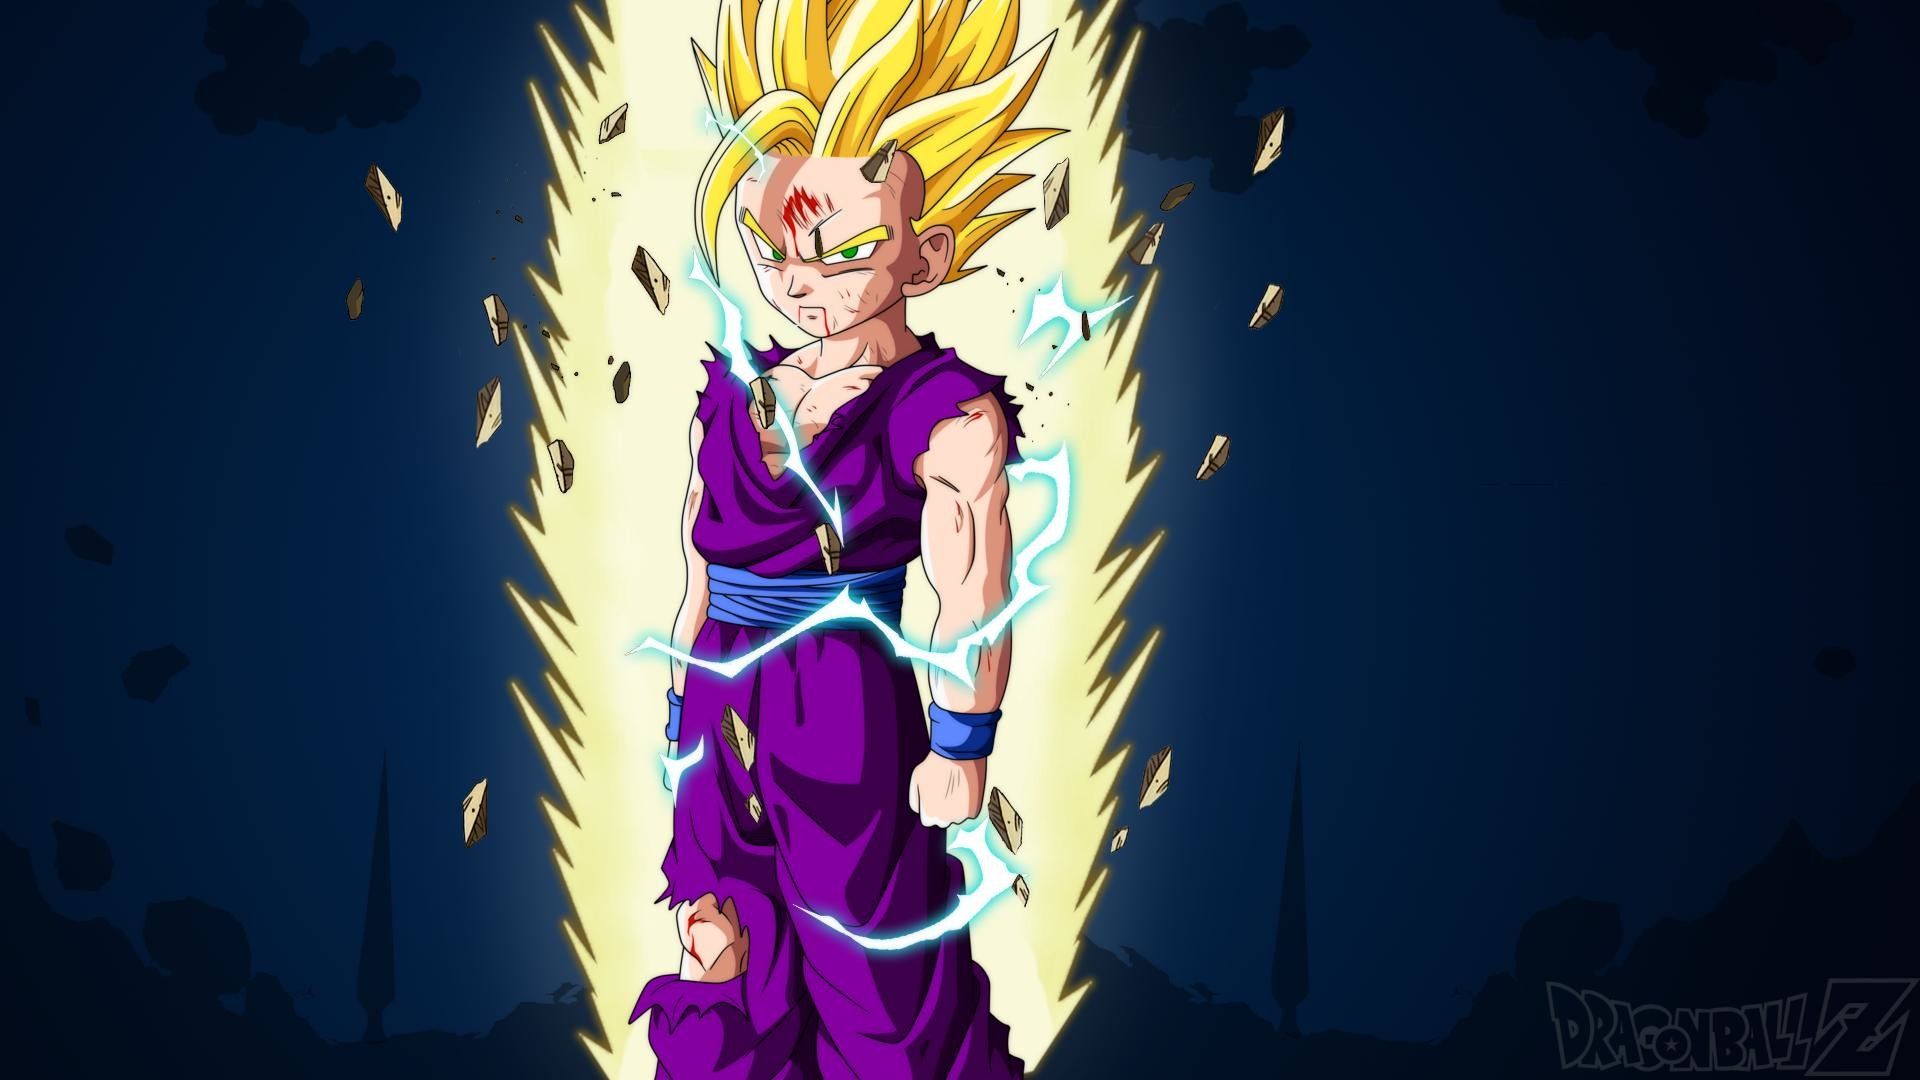 A Wallpaper about the best Anime ever. Dragonball Z Son Gohan